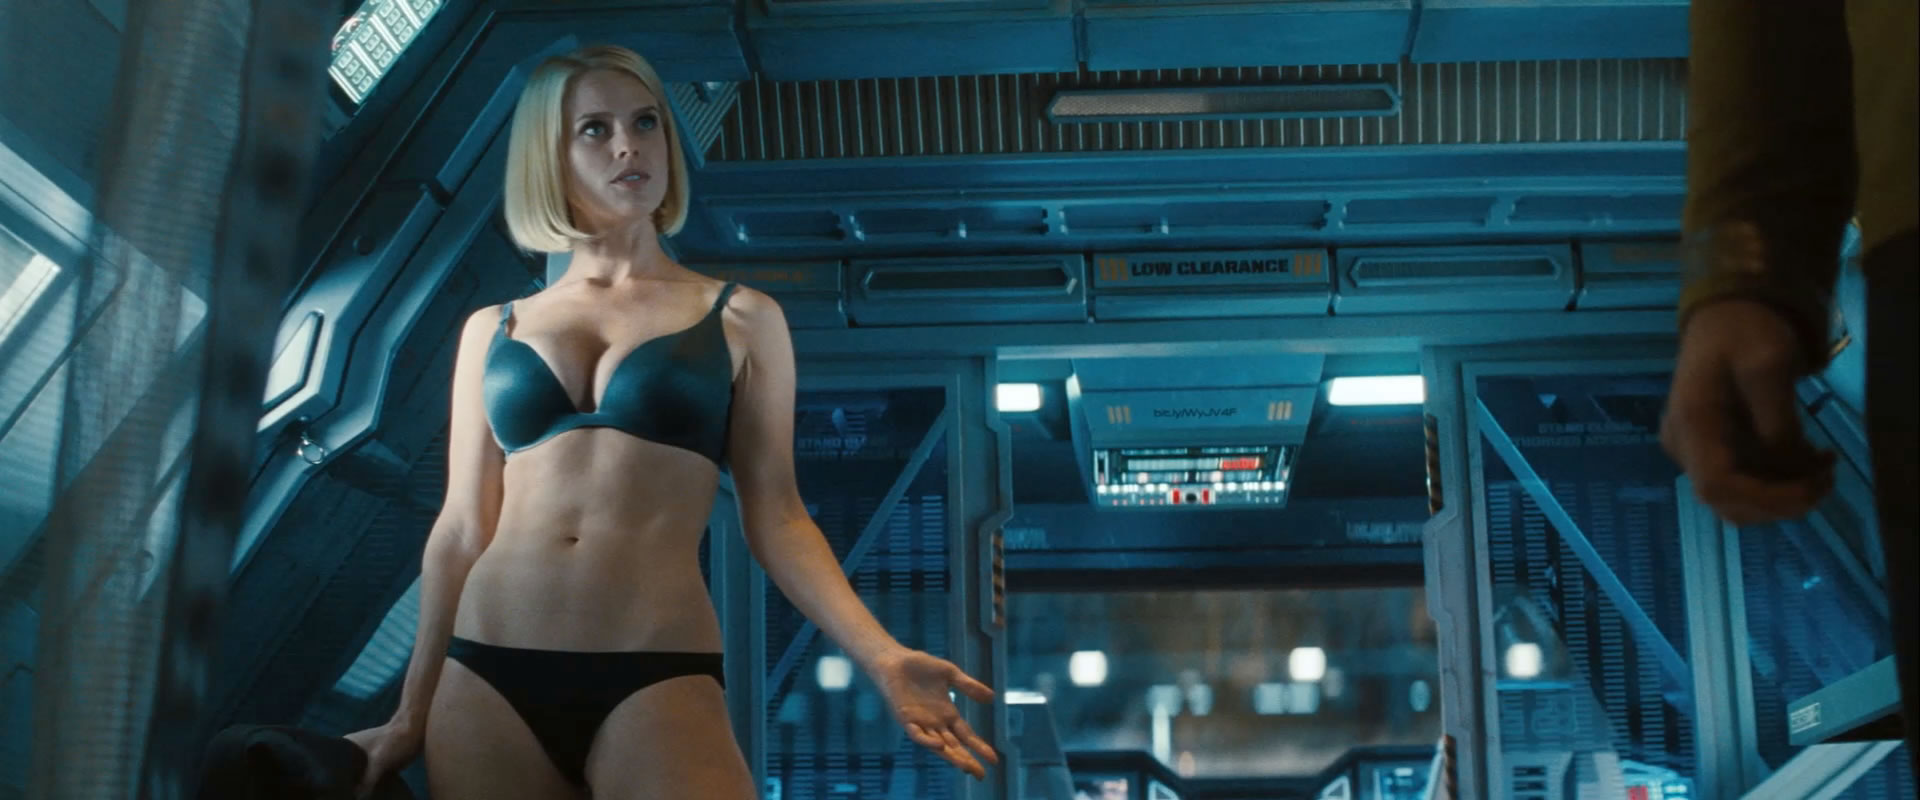 Alice Eve wearing bra and panties (lingerie) in Star Trek Into Darkness